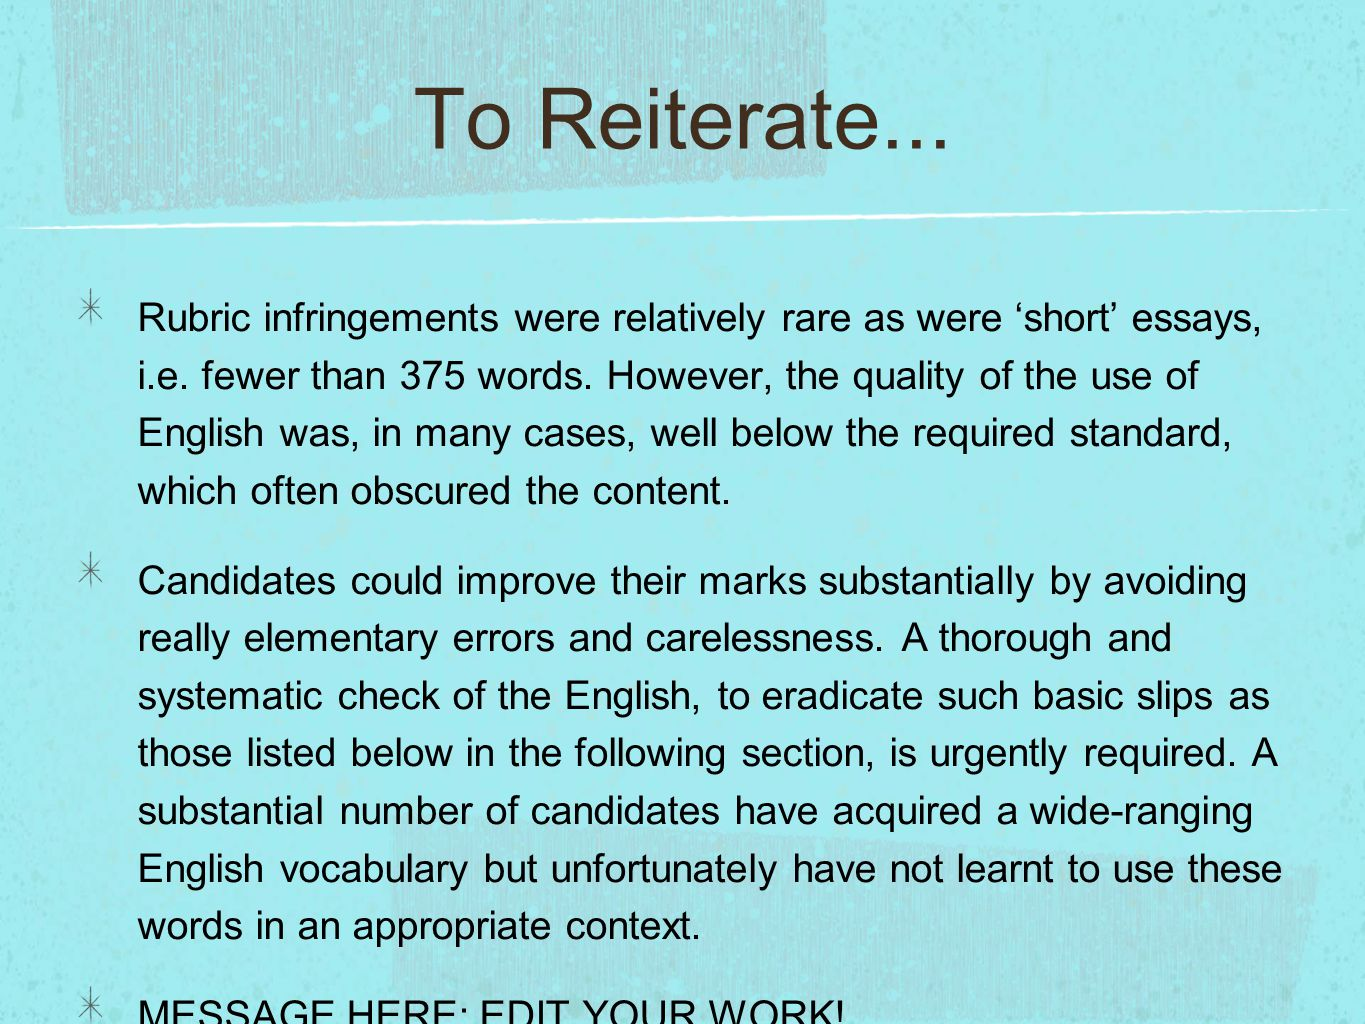 To Reiterate... Rubric infringements were relatively rare as were 'short' essays, i.e. fewer than 375 words. However, the quality of the use of Englis